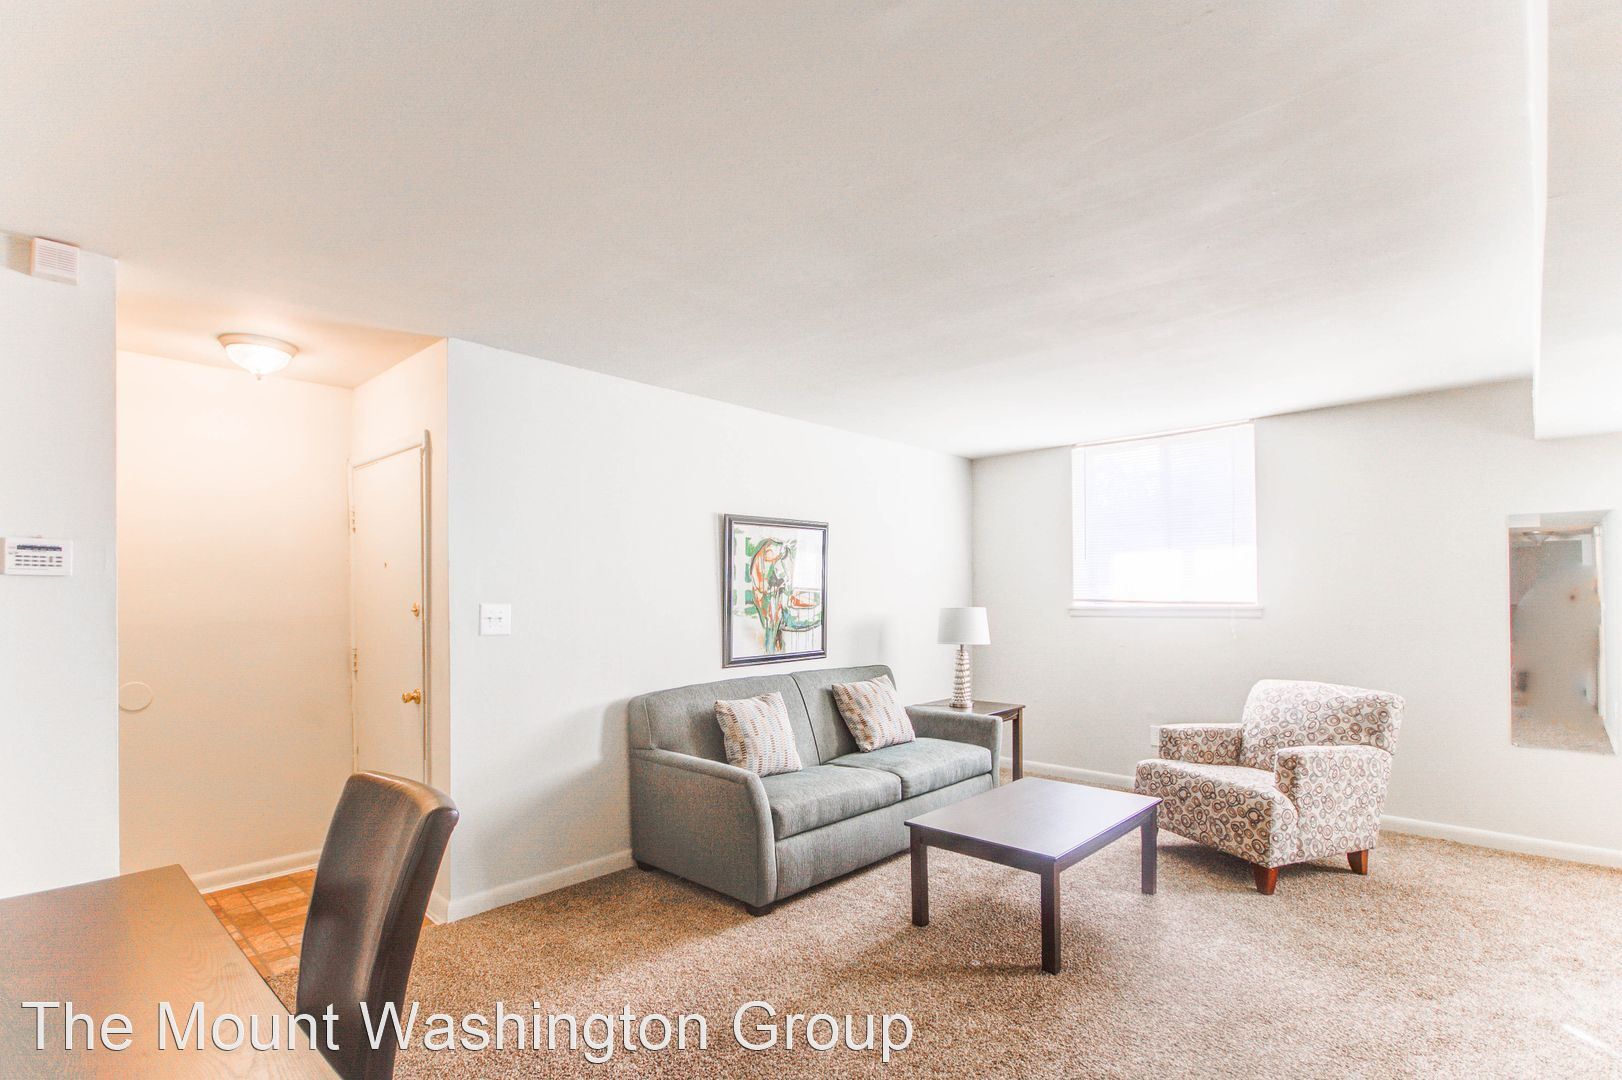 4018 N. Rogers Ave, Baltimore, MD - $895